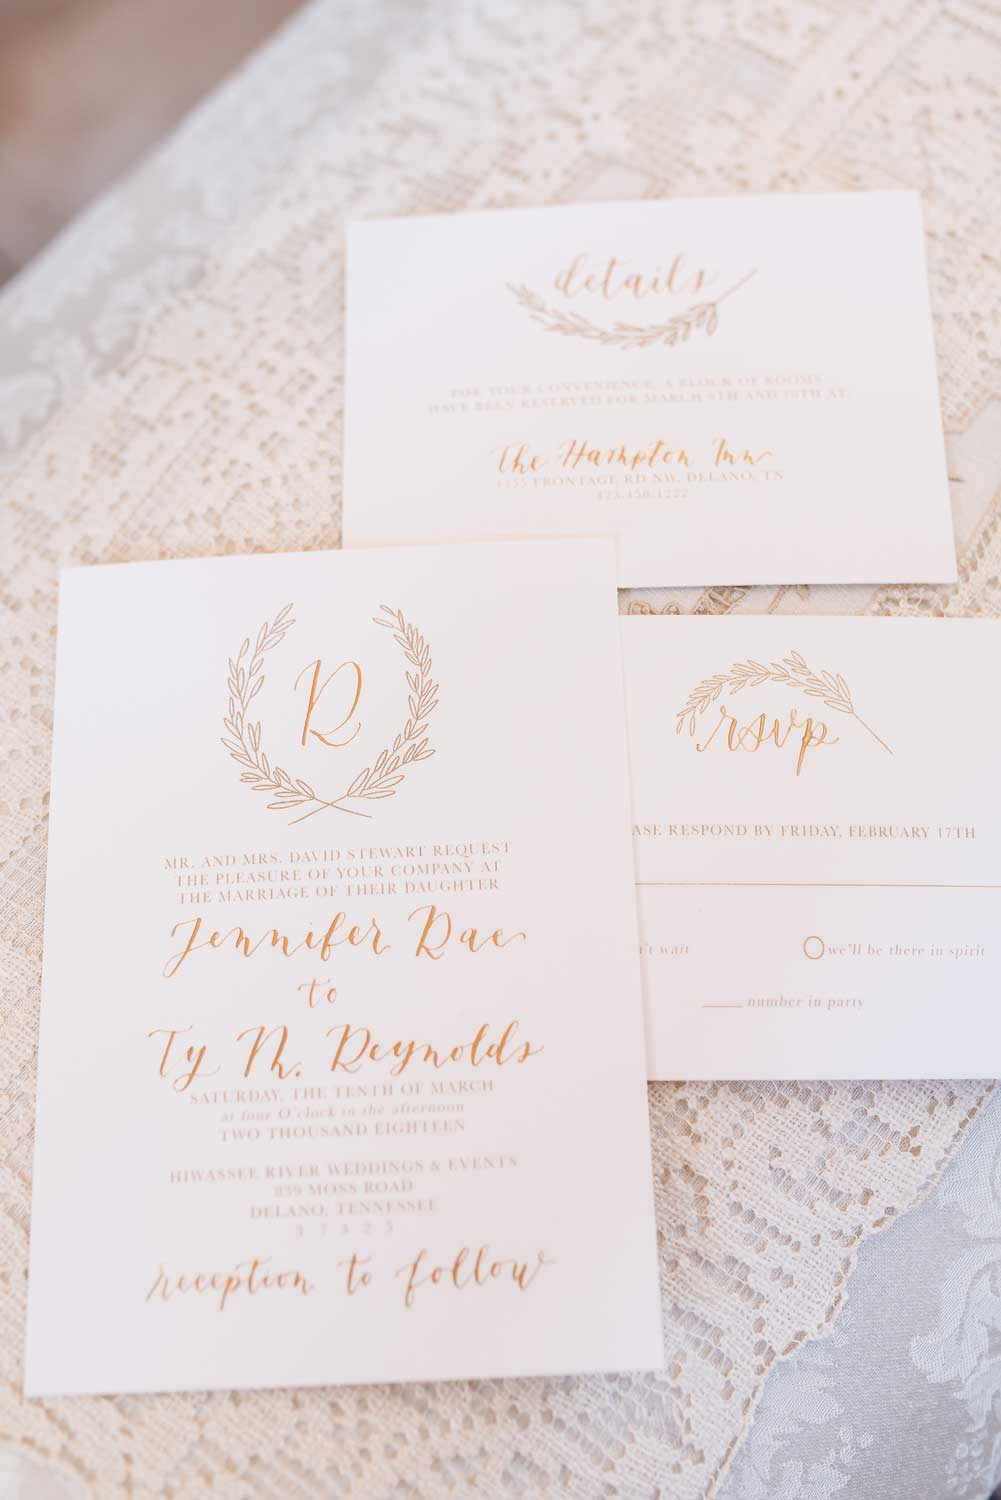 wedding Invitations in gold and white on vintage lace